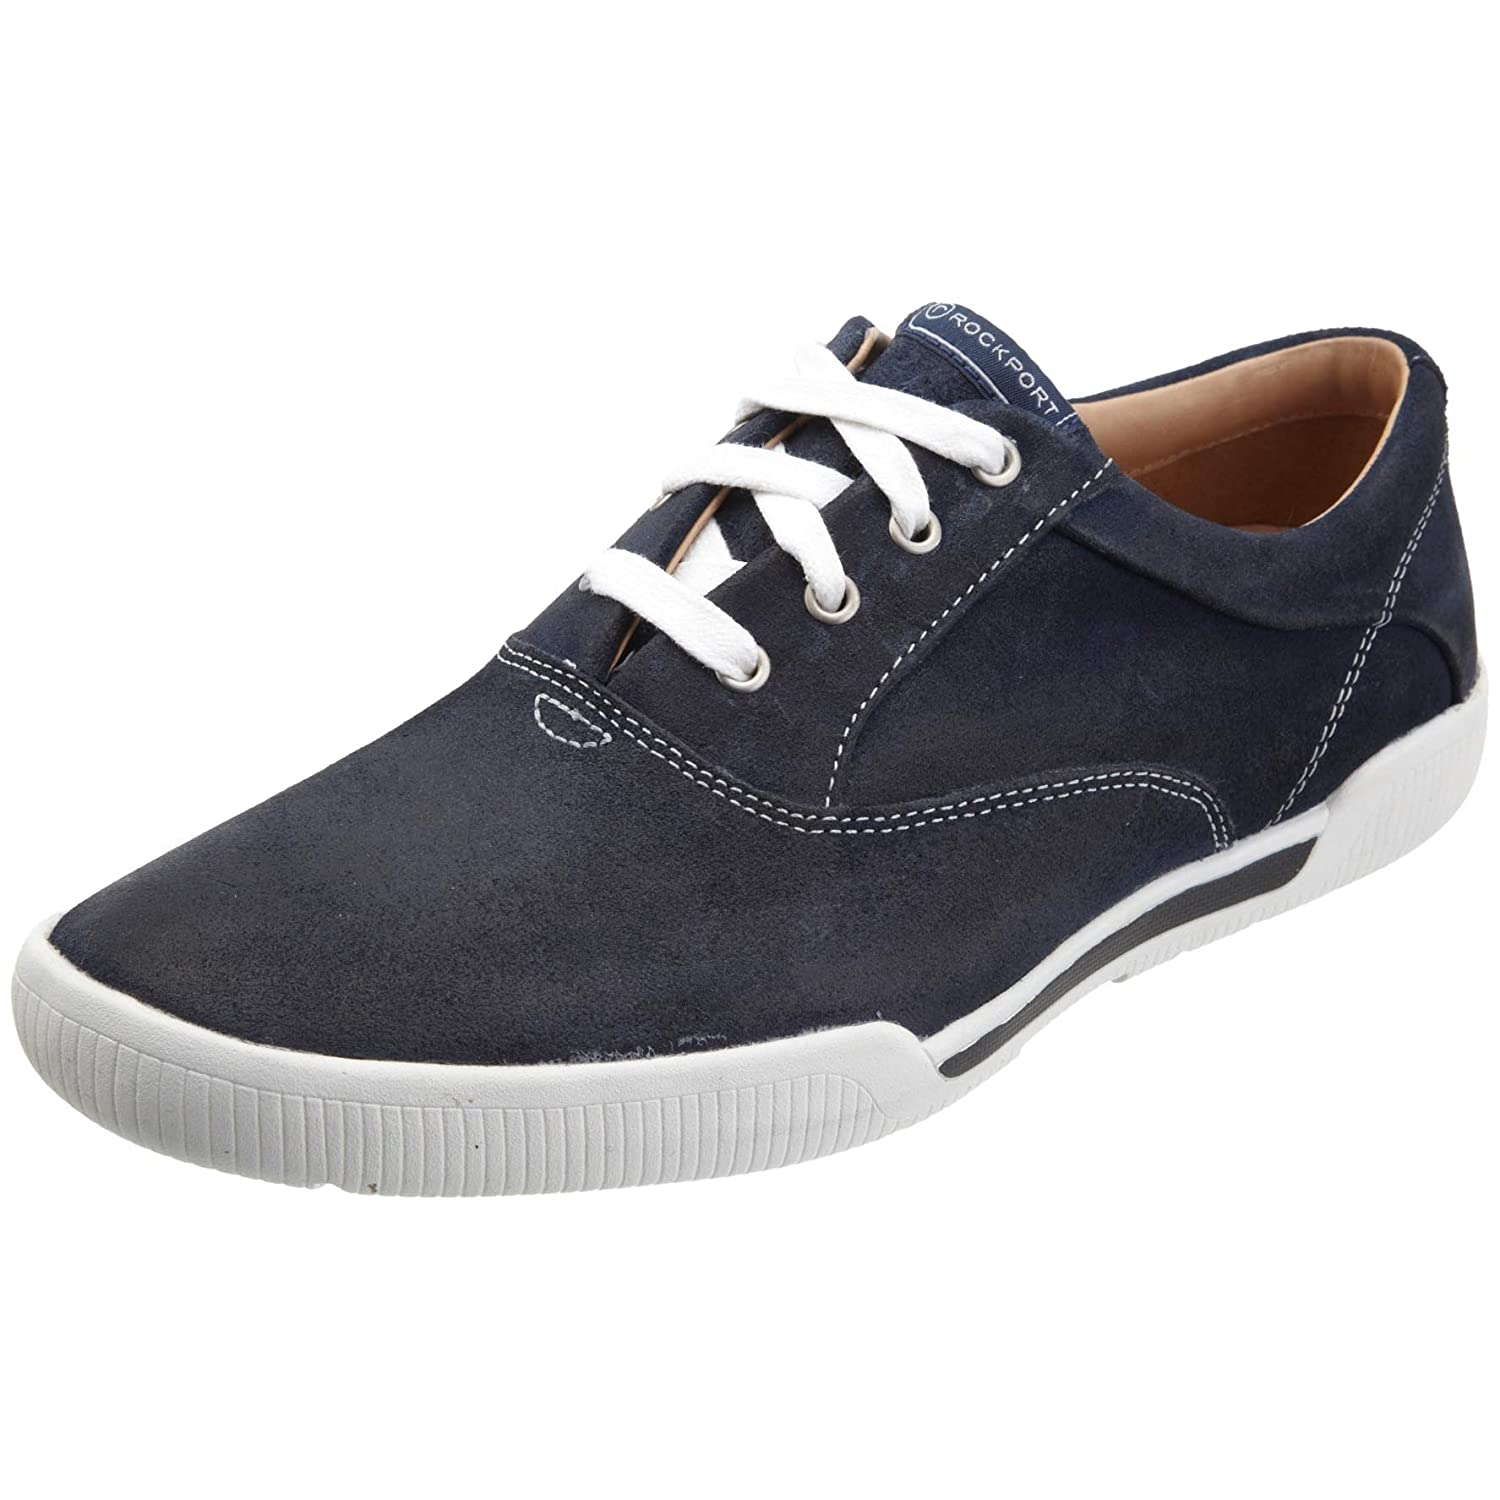 73b1e7d047 Rockport Men s Collins Navy Suede Lace Up K55328 11 UK